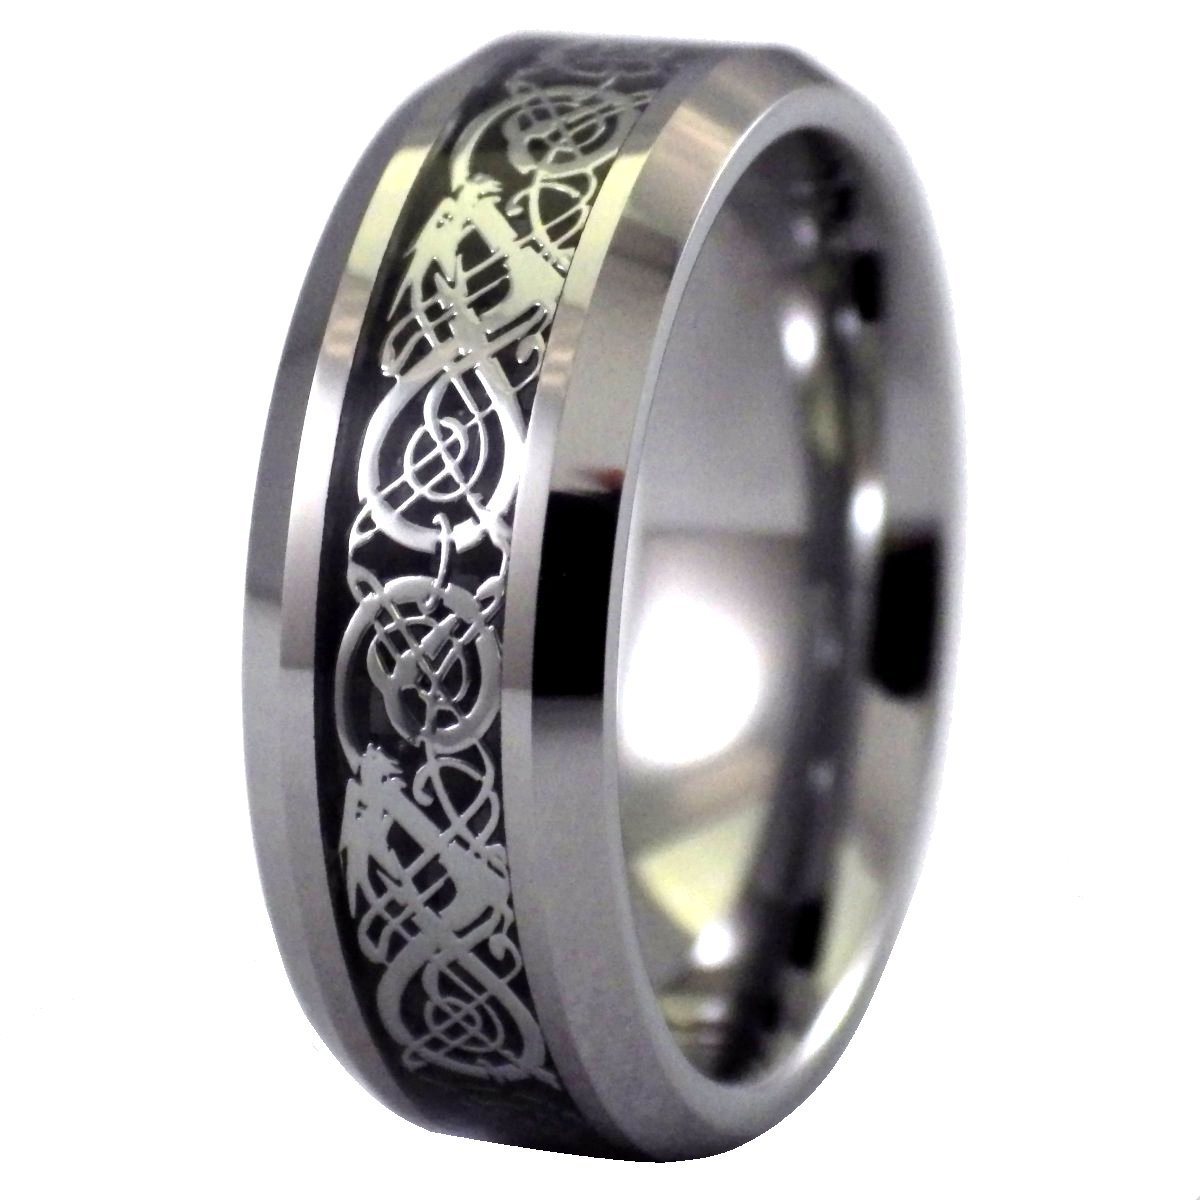 Tungsten Celtic Dragon Ring Black Wedding Band Viking Jewelry Size 9.5